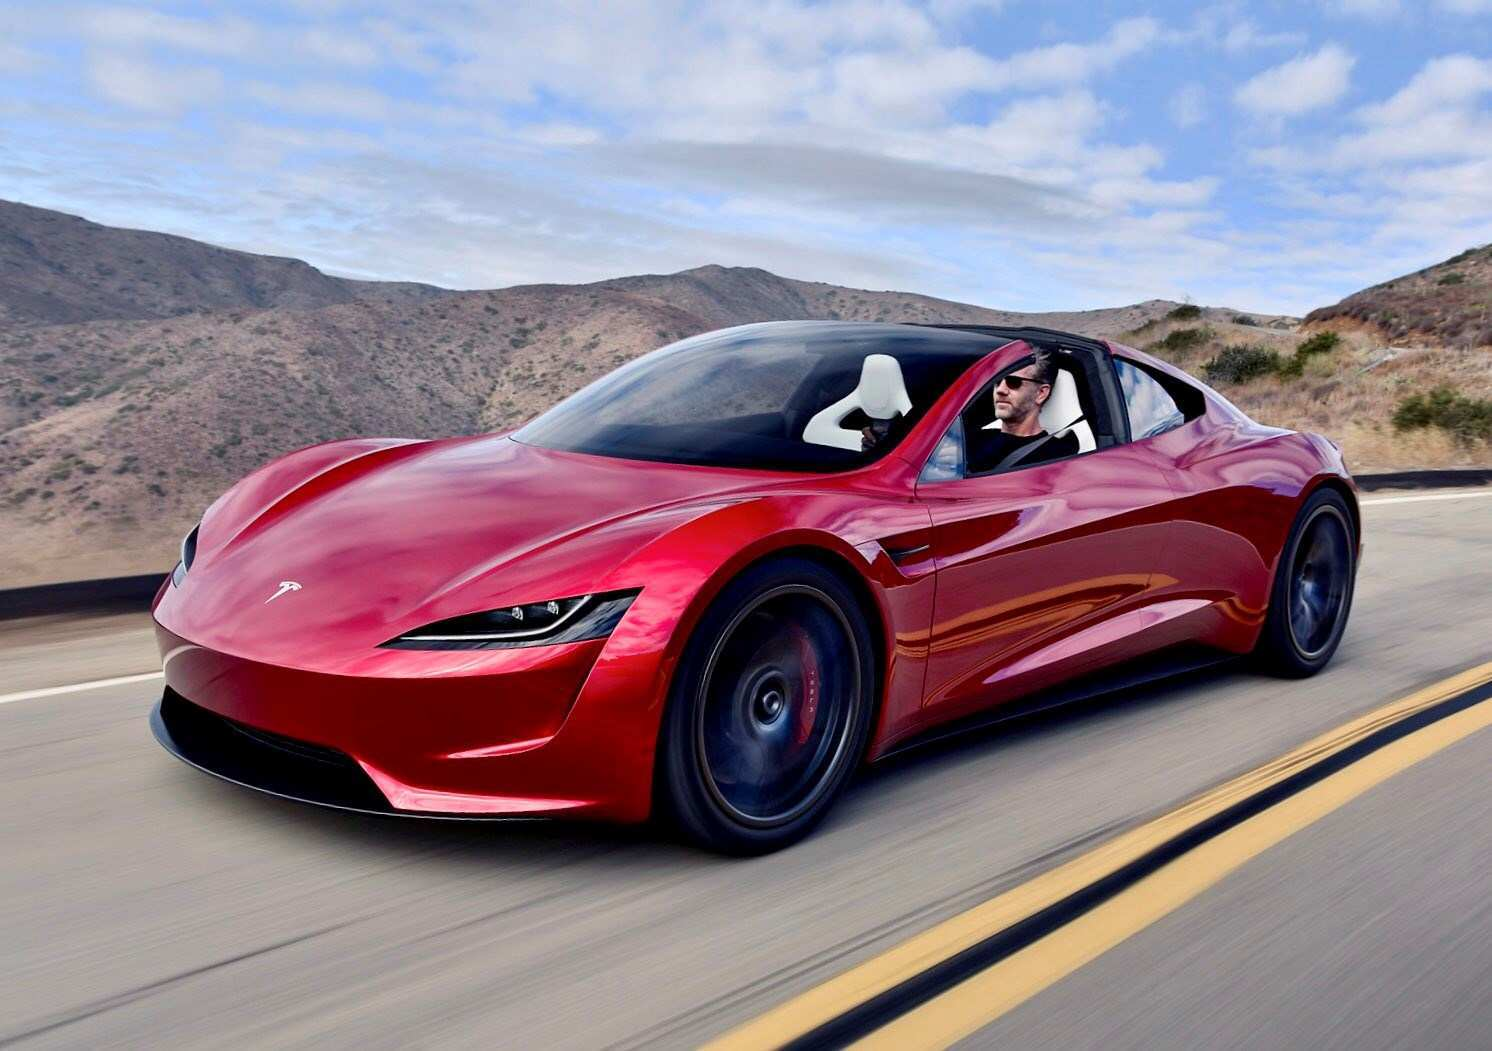 88 Best Review 2020 Tesla Roadster Dimensions Wallpaper for 2020 Tesla Roadster Dimensions